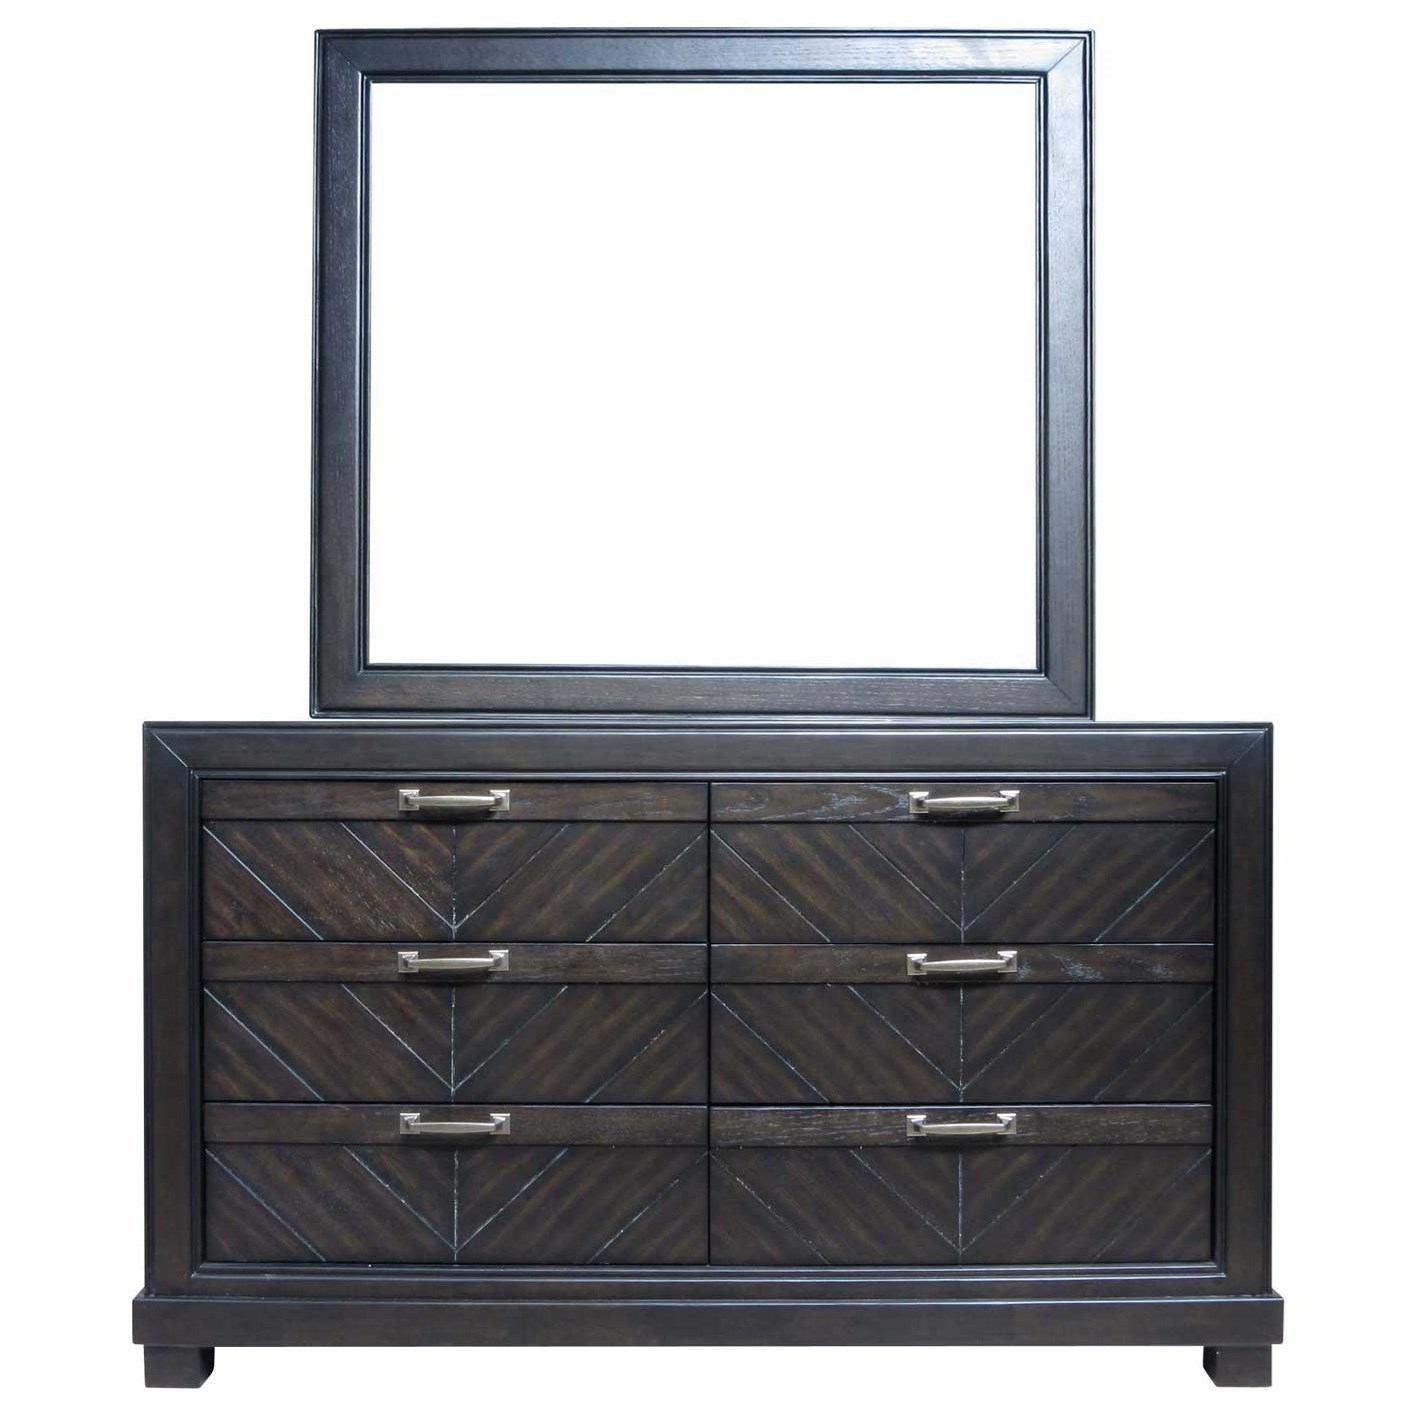 Montana Dresser and Mirror Set by Steve Silver at Northeast Factory Direct